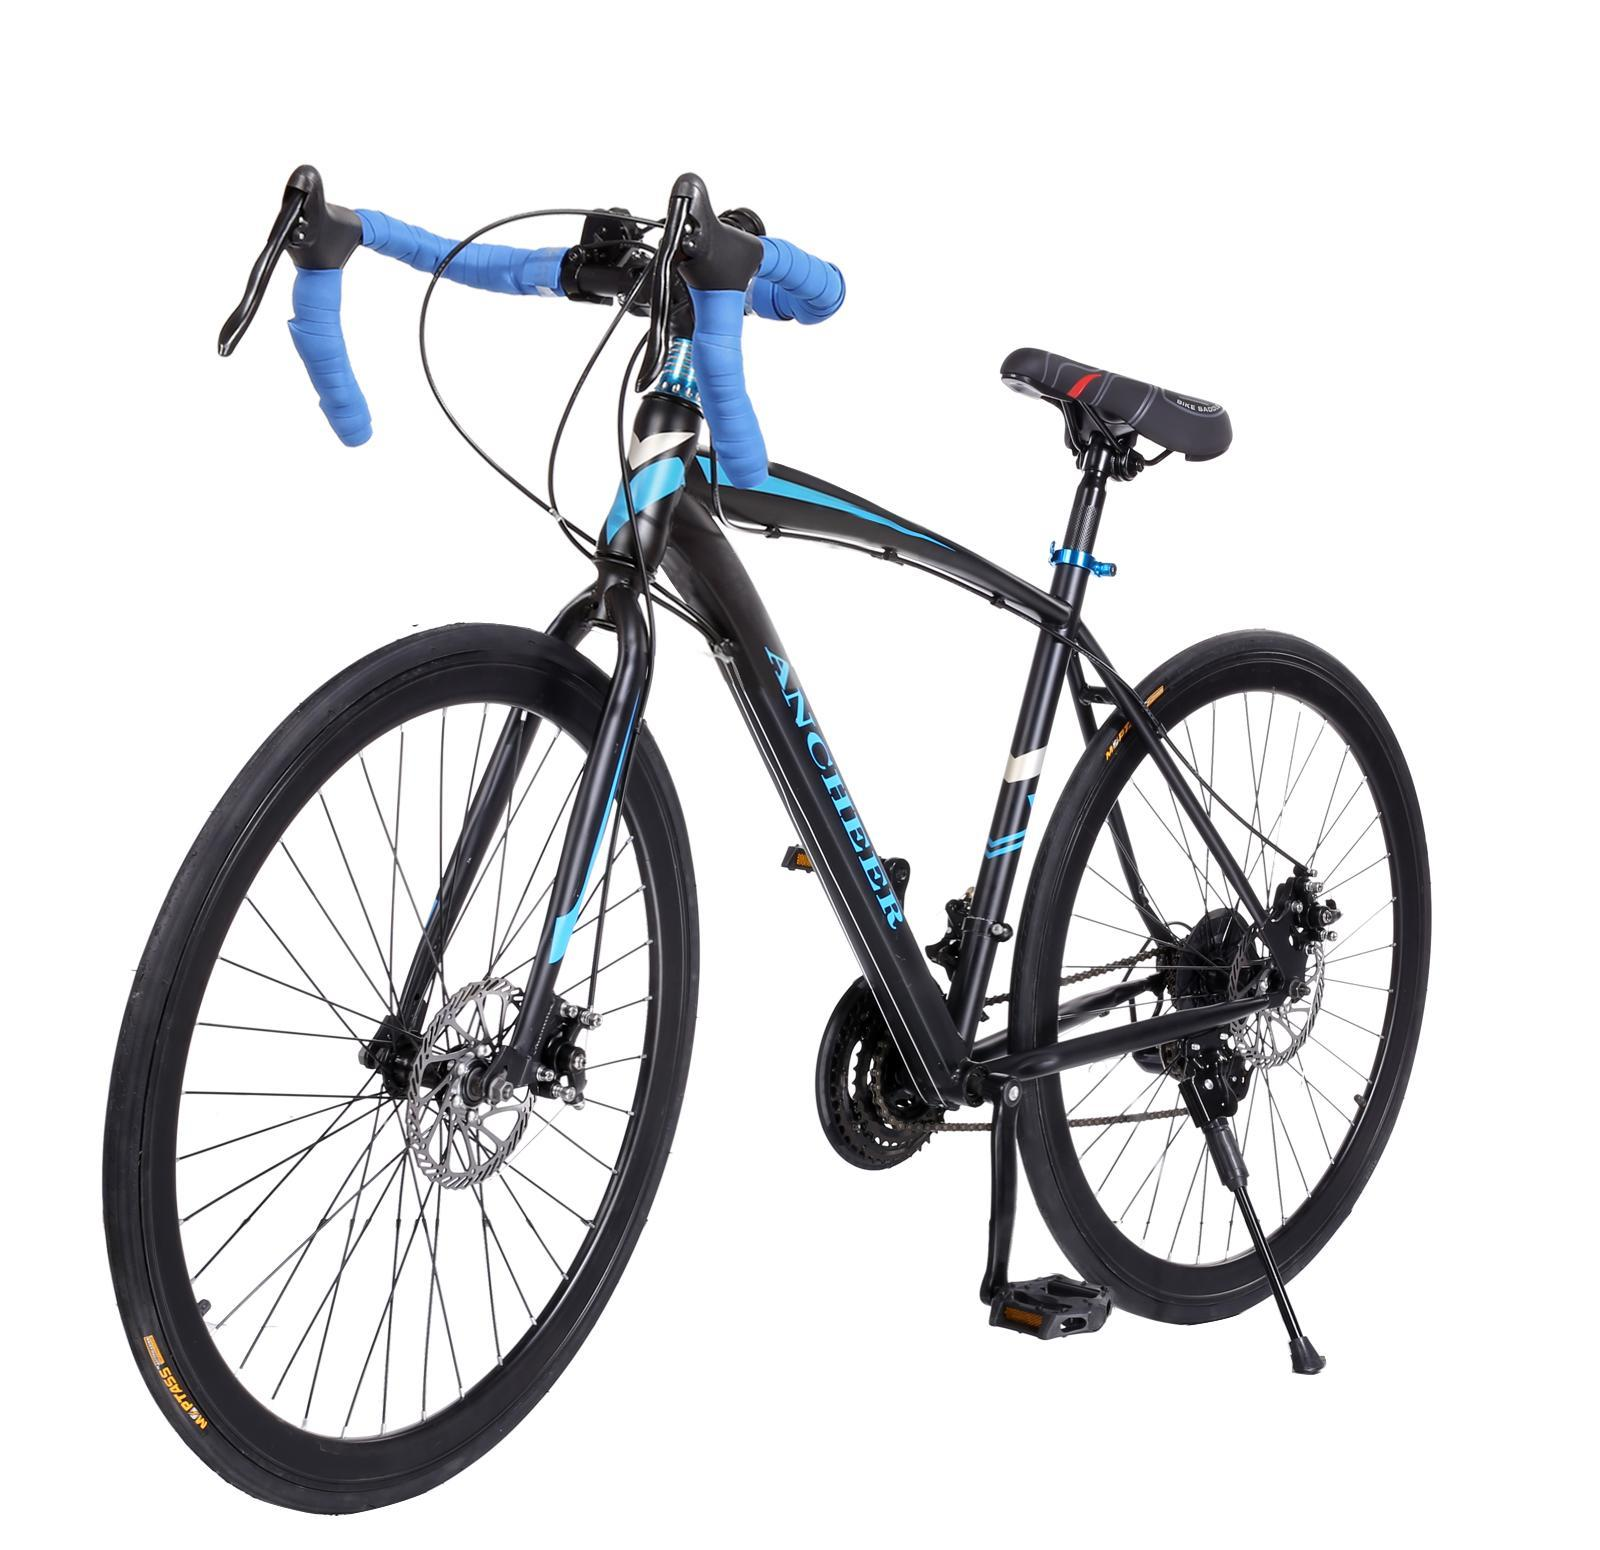 700C Aluminum Road Racing Highway Bicycle  21-speed  Road Cycling Bicycle MAEHE